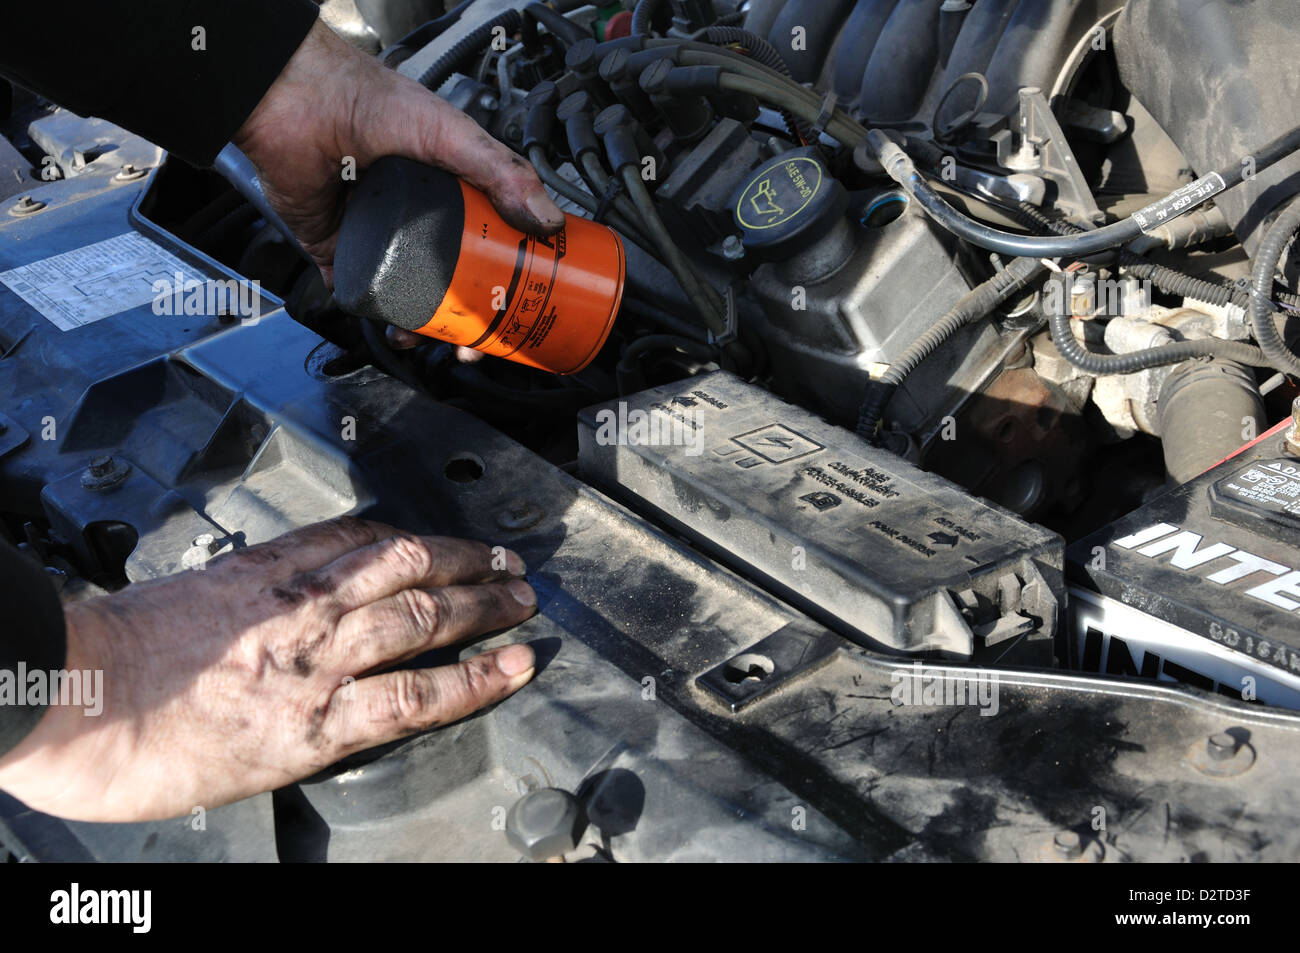 Oil Filter Change >> Man Working On His Car Changing Oil Filter Stock Photo